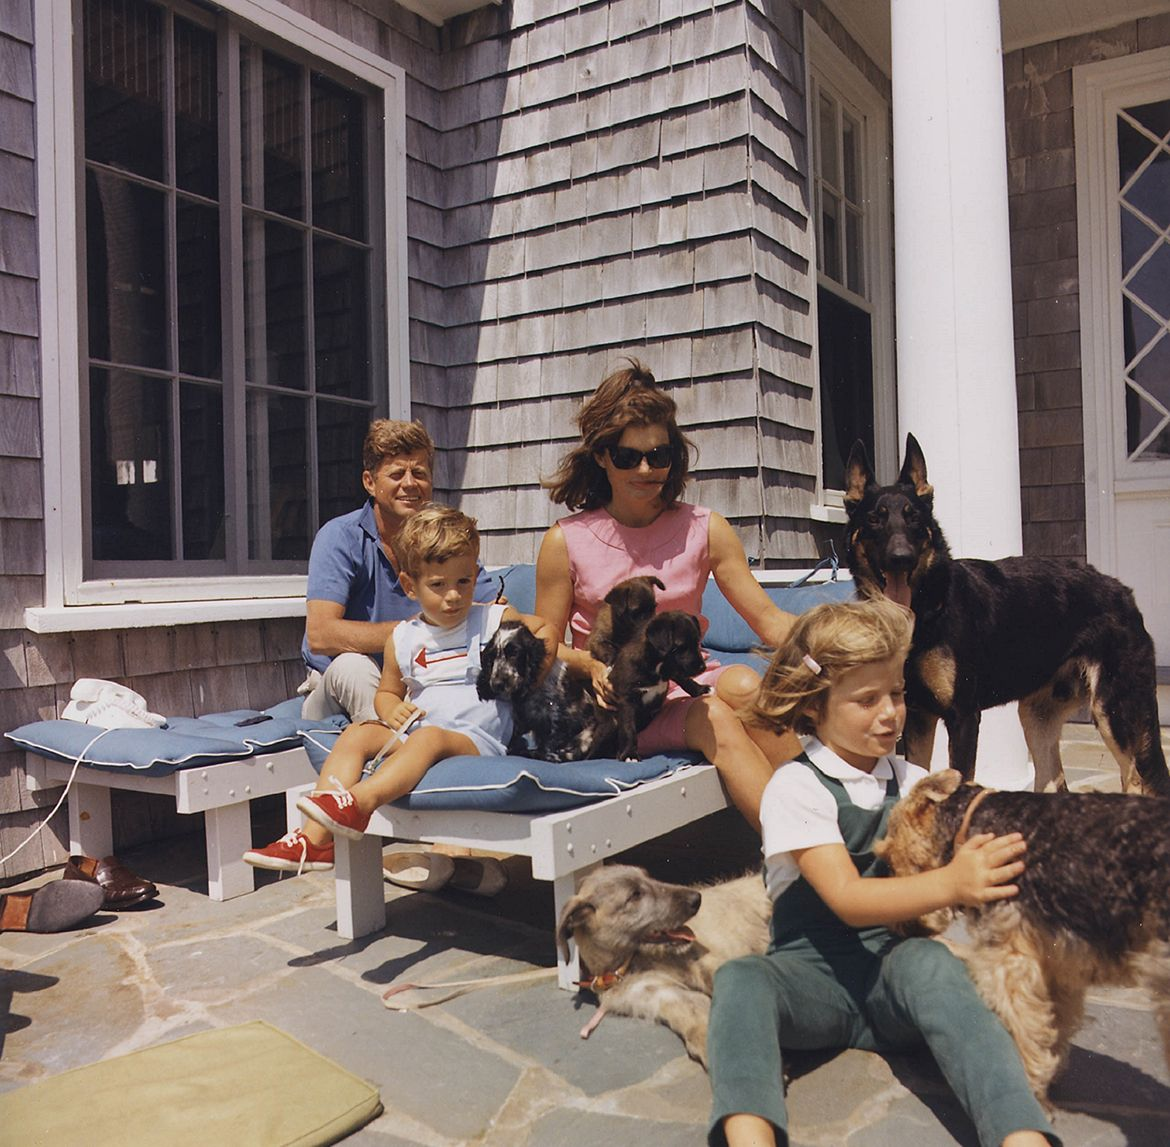 happy-kids-happy-dogs-building-a-friendship-right-from-the-start-by-barbara-shumannfang-compressor